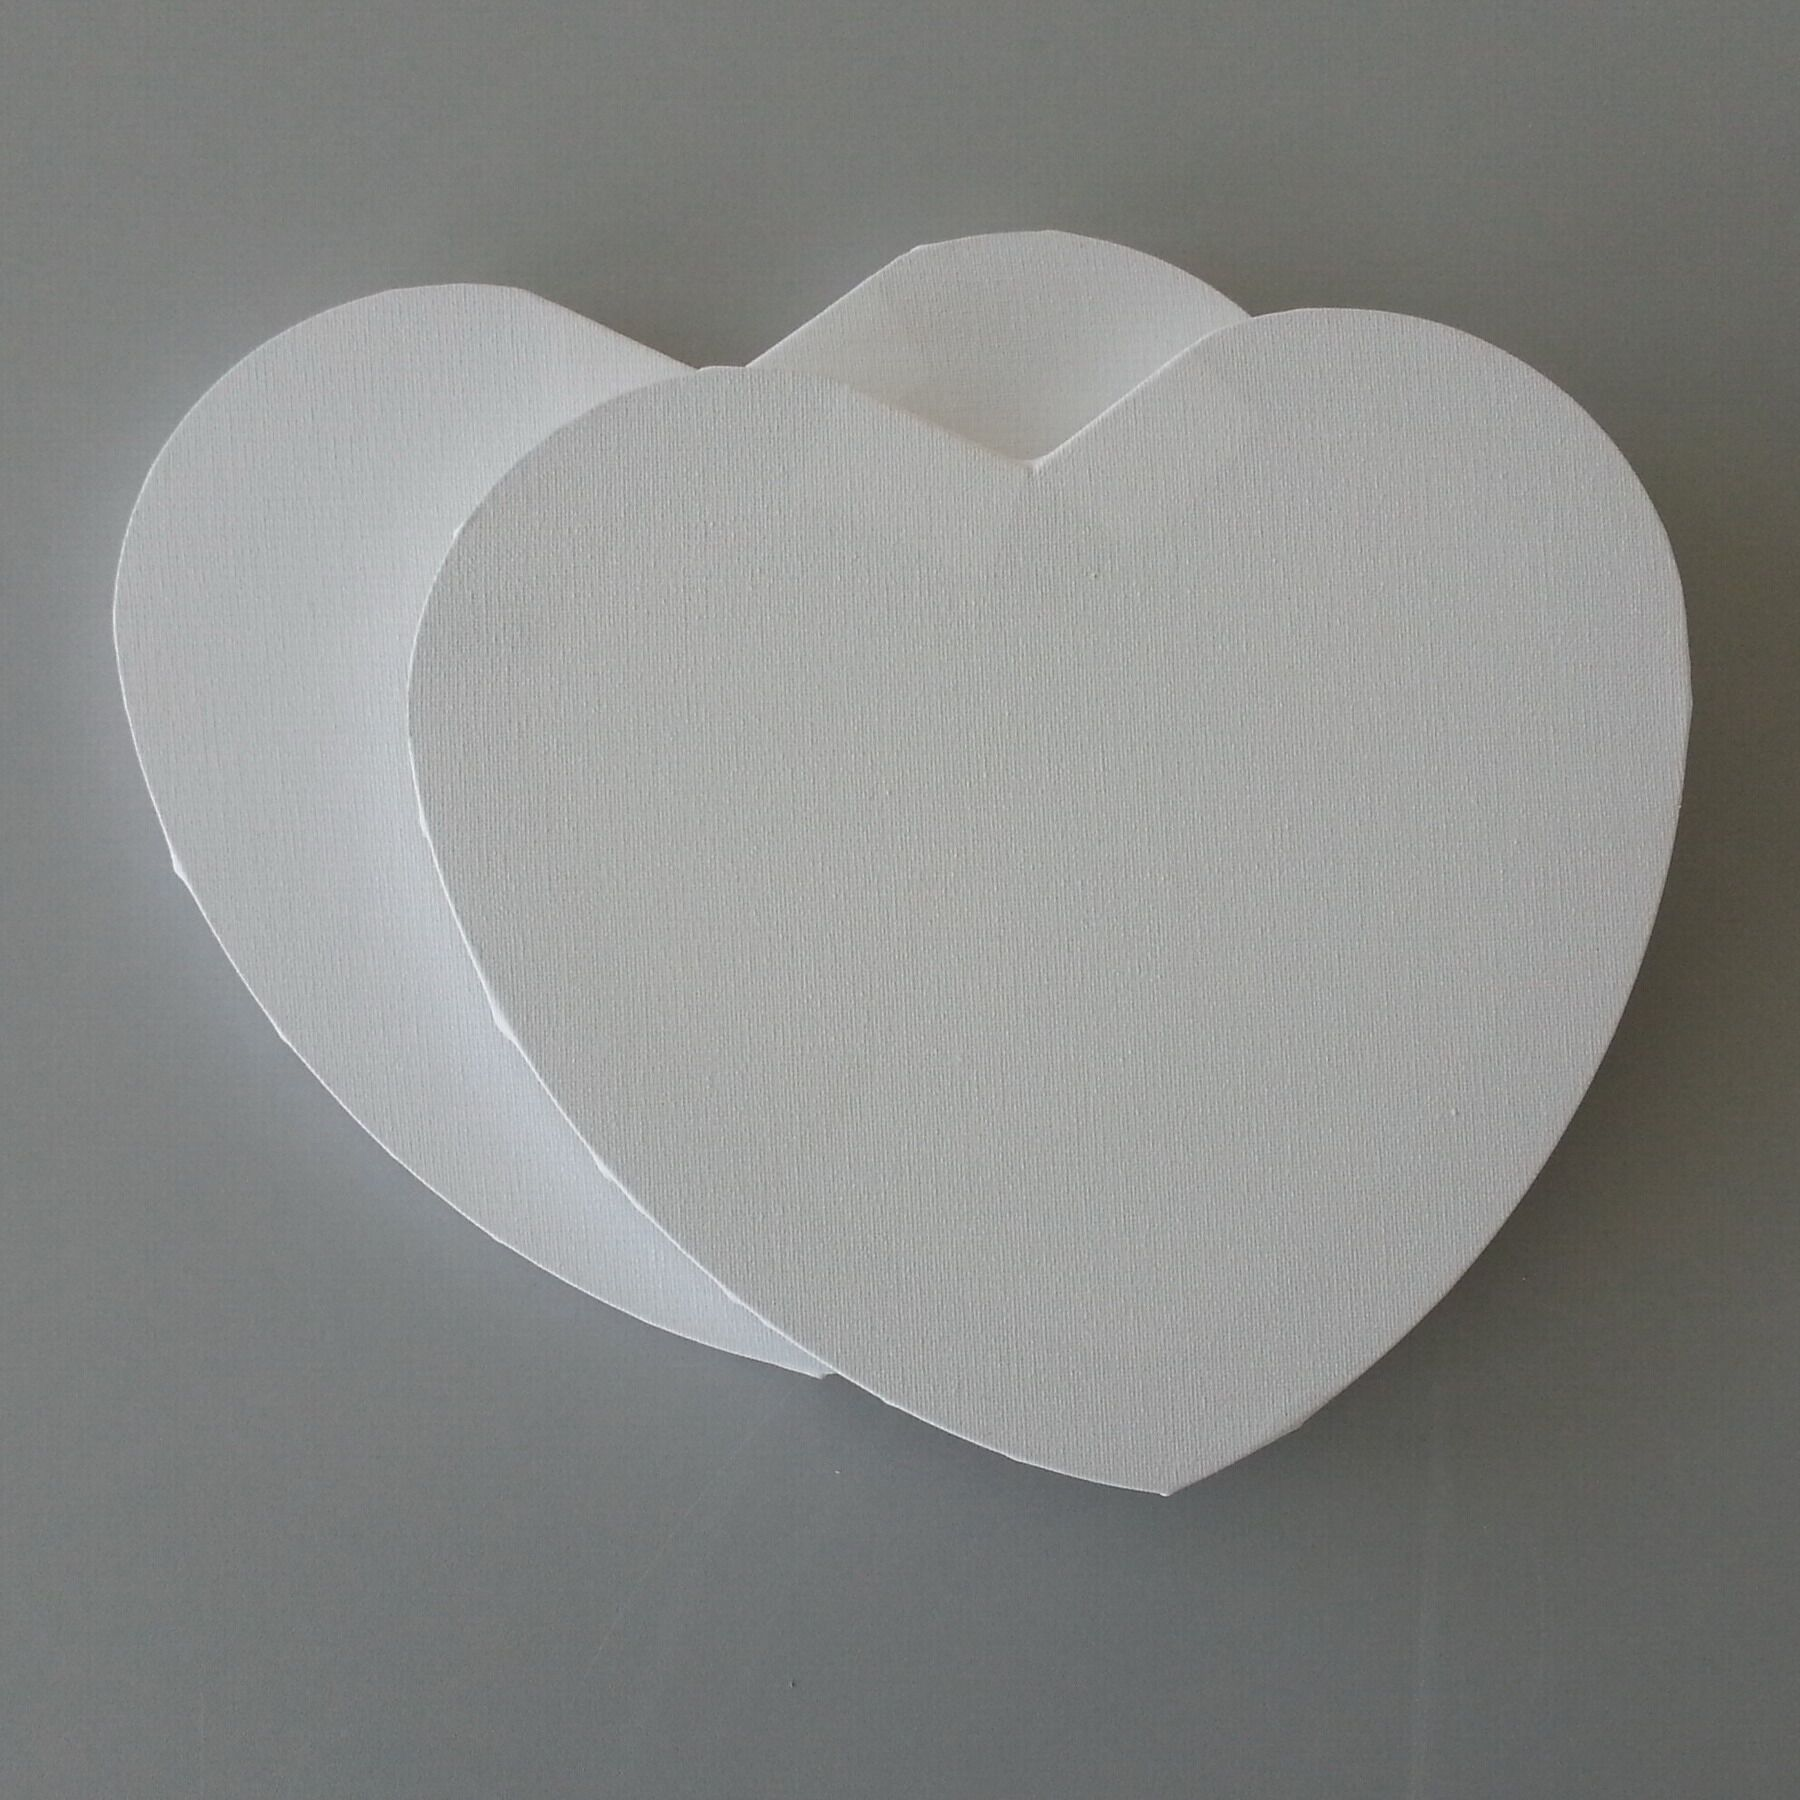 heart shape canvas shuyang sundy art and craft co ltd